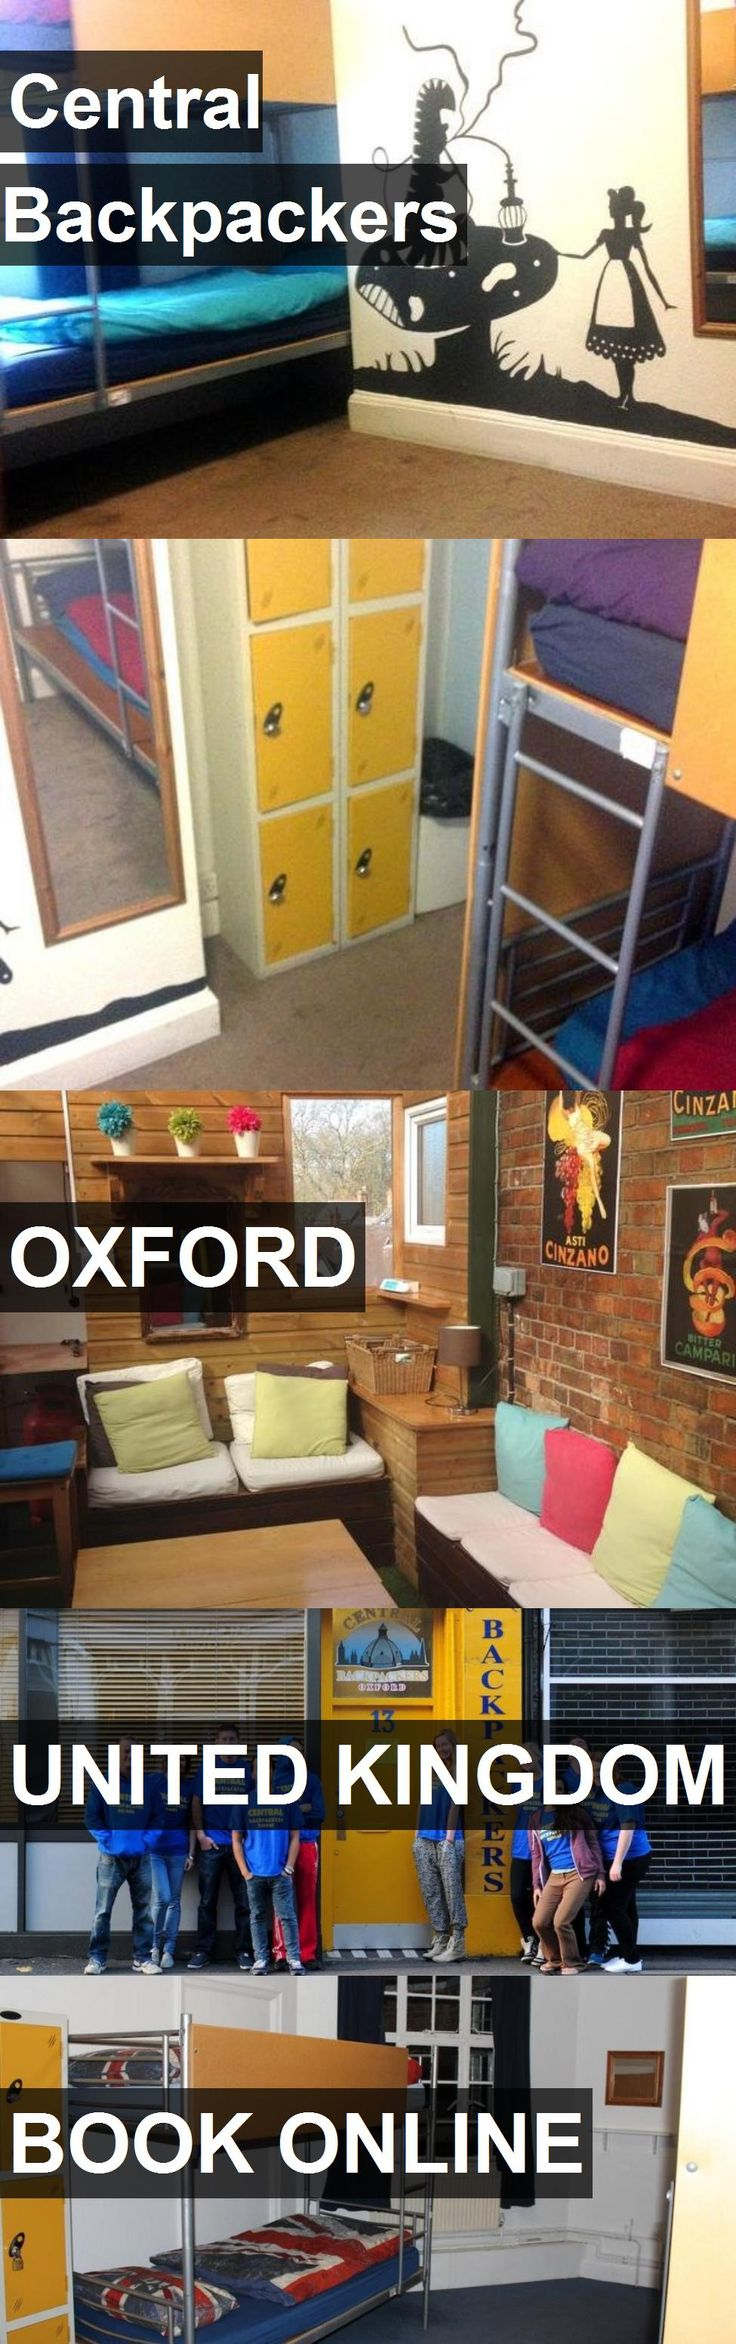 Hotel Central Backpackers in Oxford, United Kingdom. For more information, photos, reviews and best prices please follow the link. #UnitedKingdom #Oxford #travel #vacation #hotel